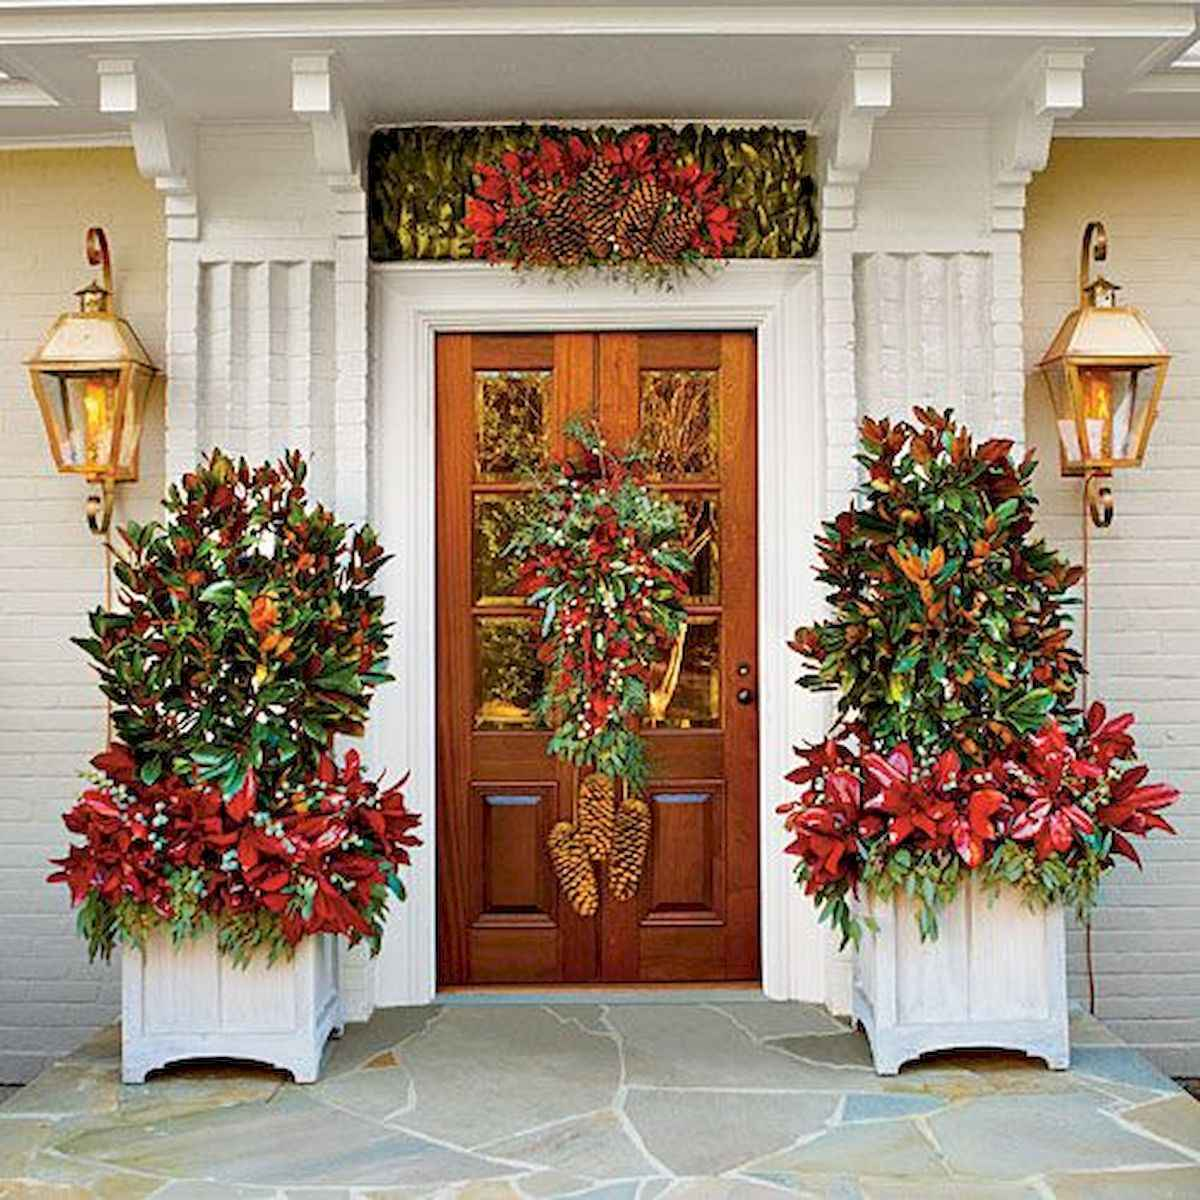 50 stunning front porch christmas lights decorations ideas (27)